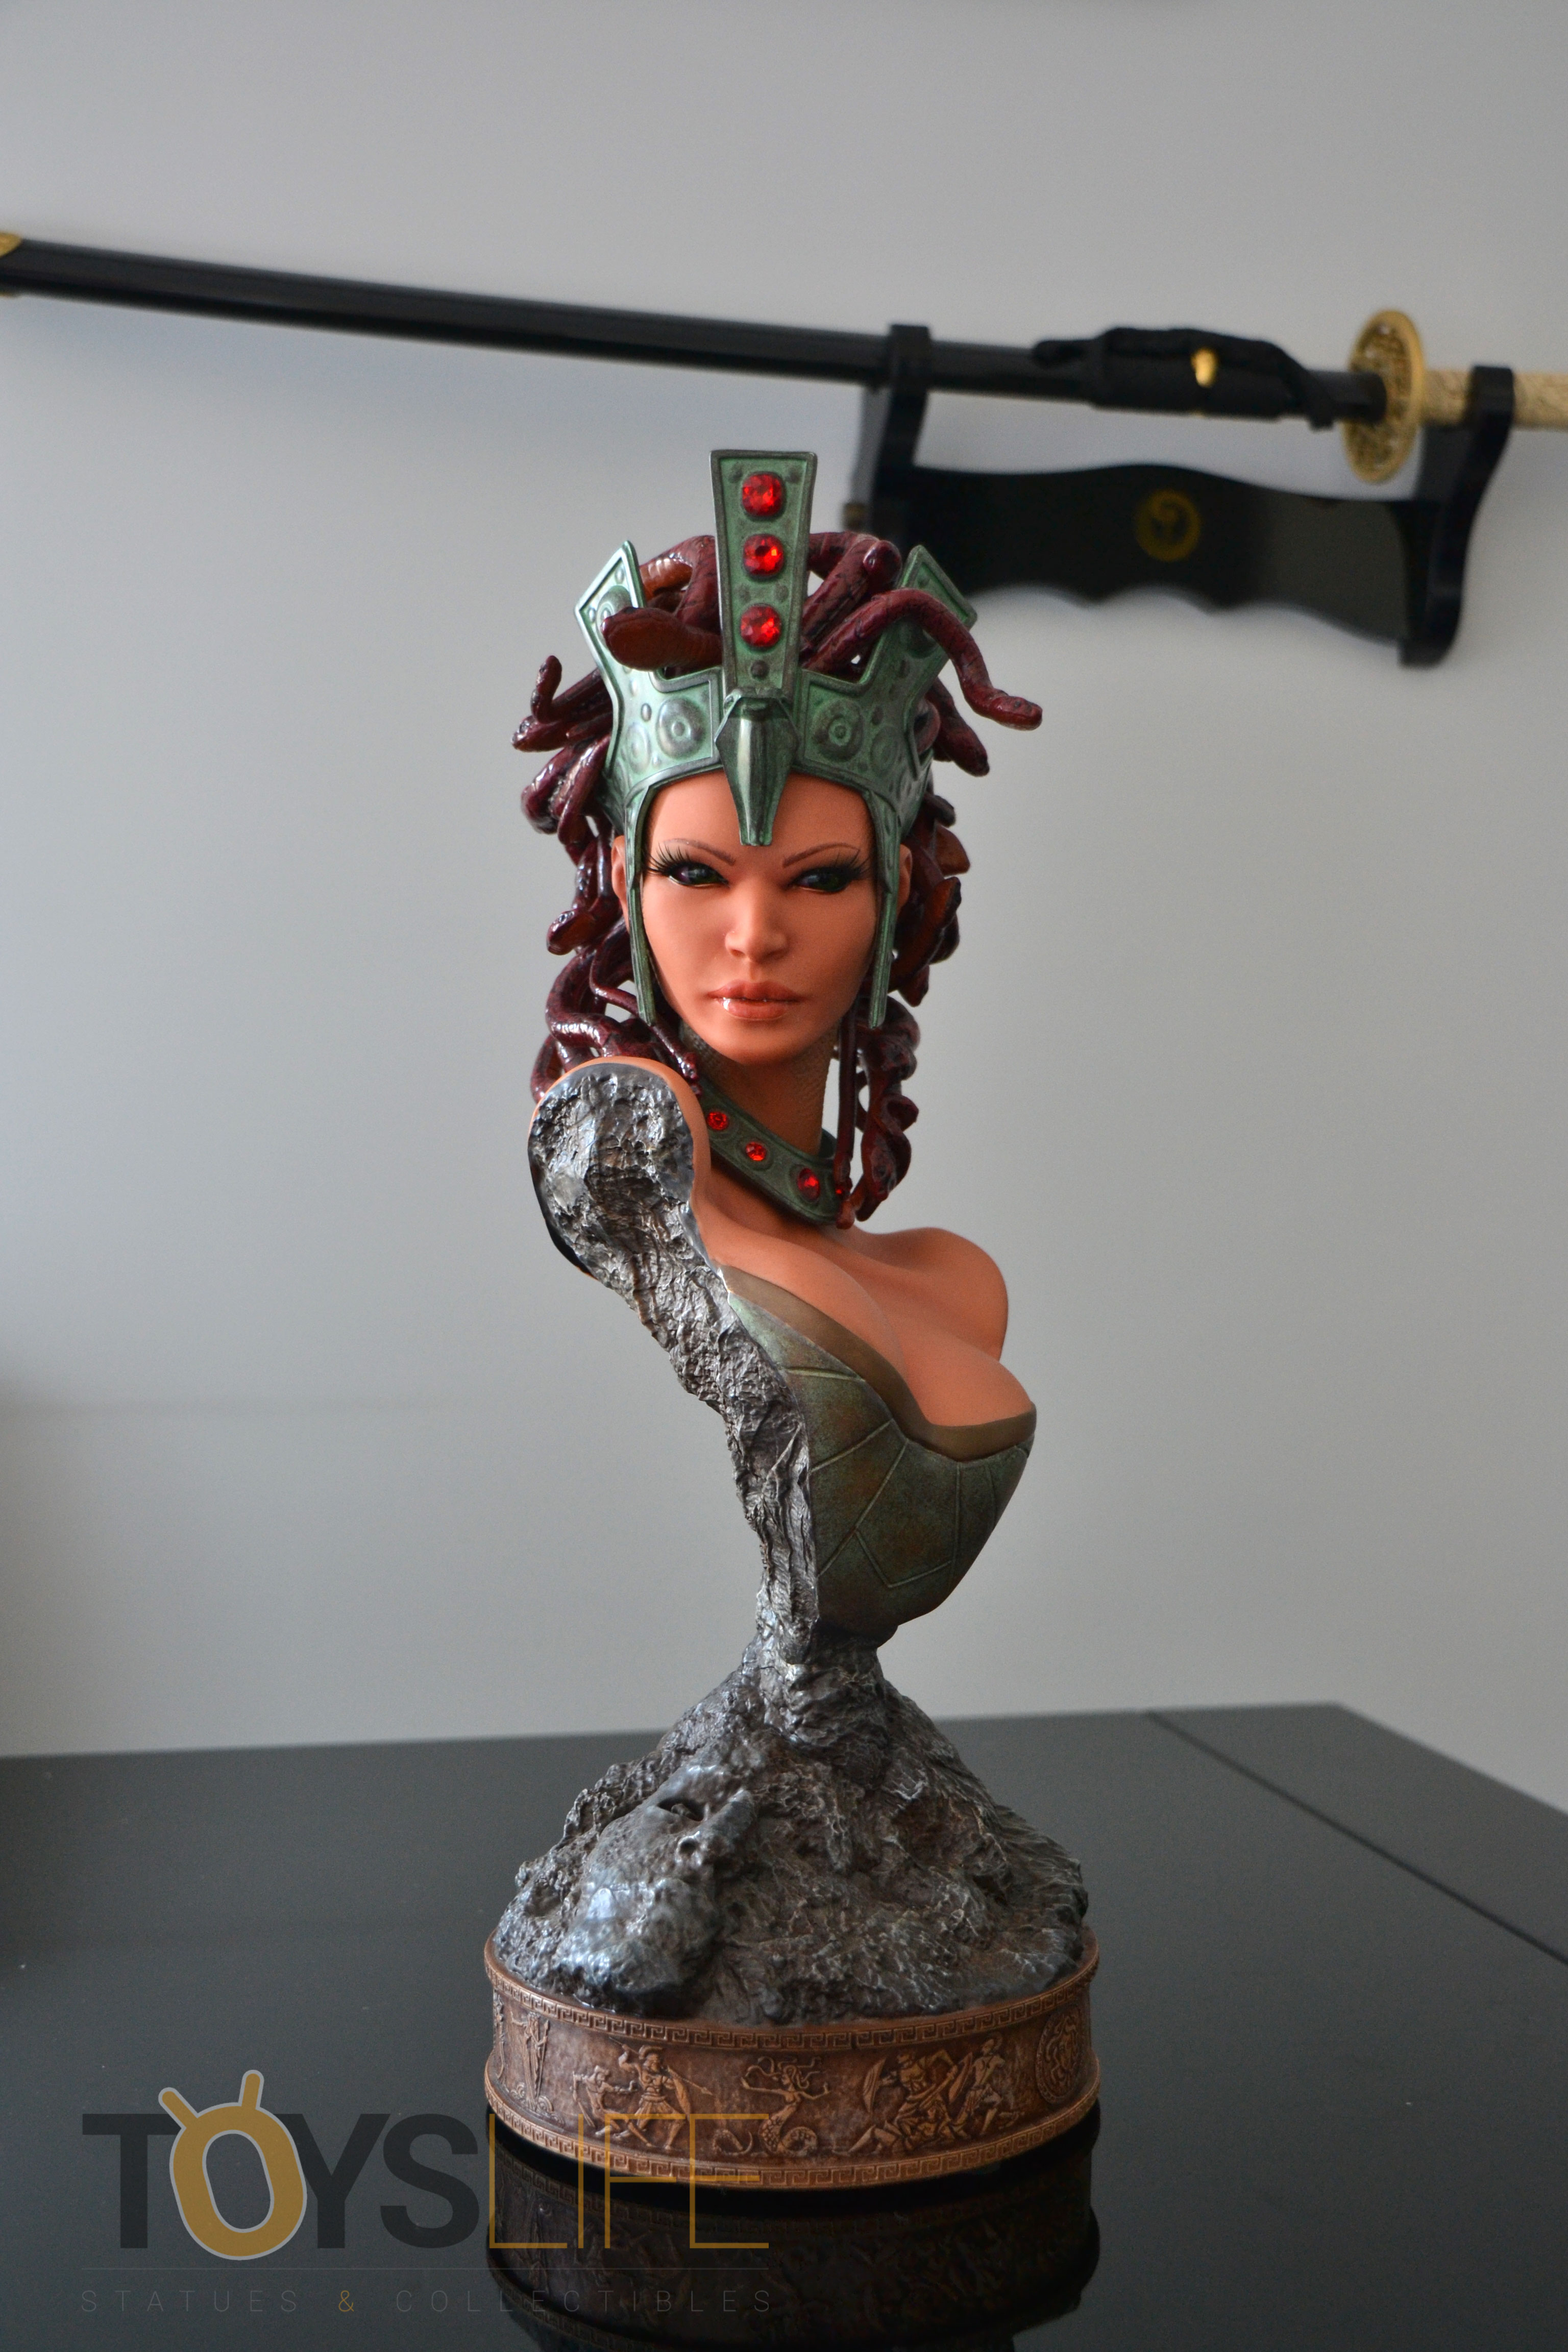 hmo-medusa-bust-toyslife-review-09